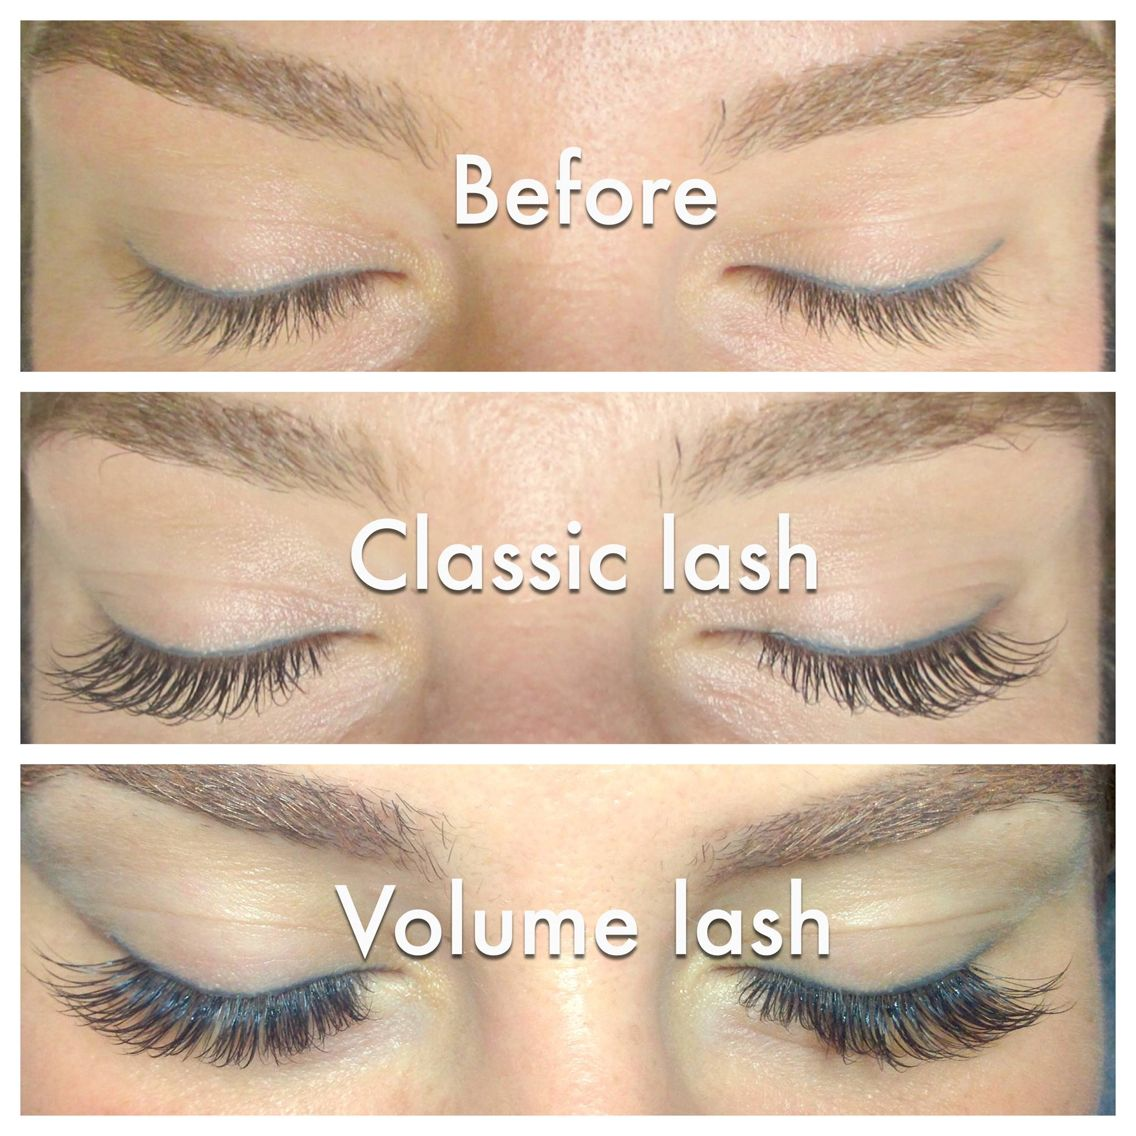 aec9a742fbb Not my work... Examples of classic and volume lashes | eyelash ...